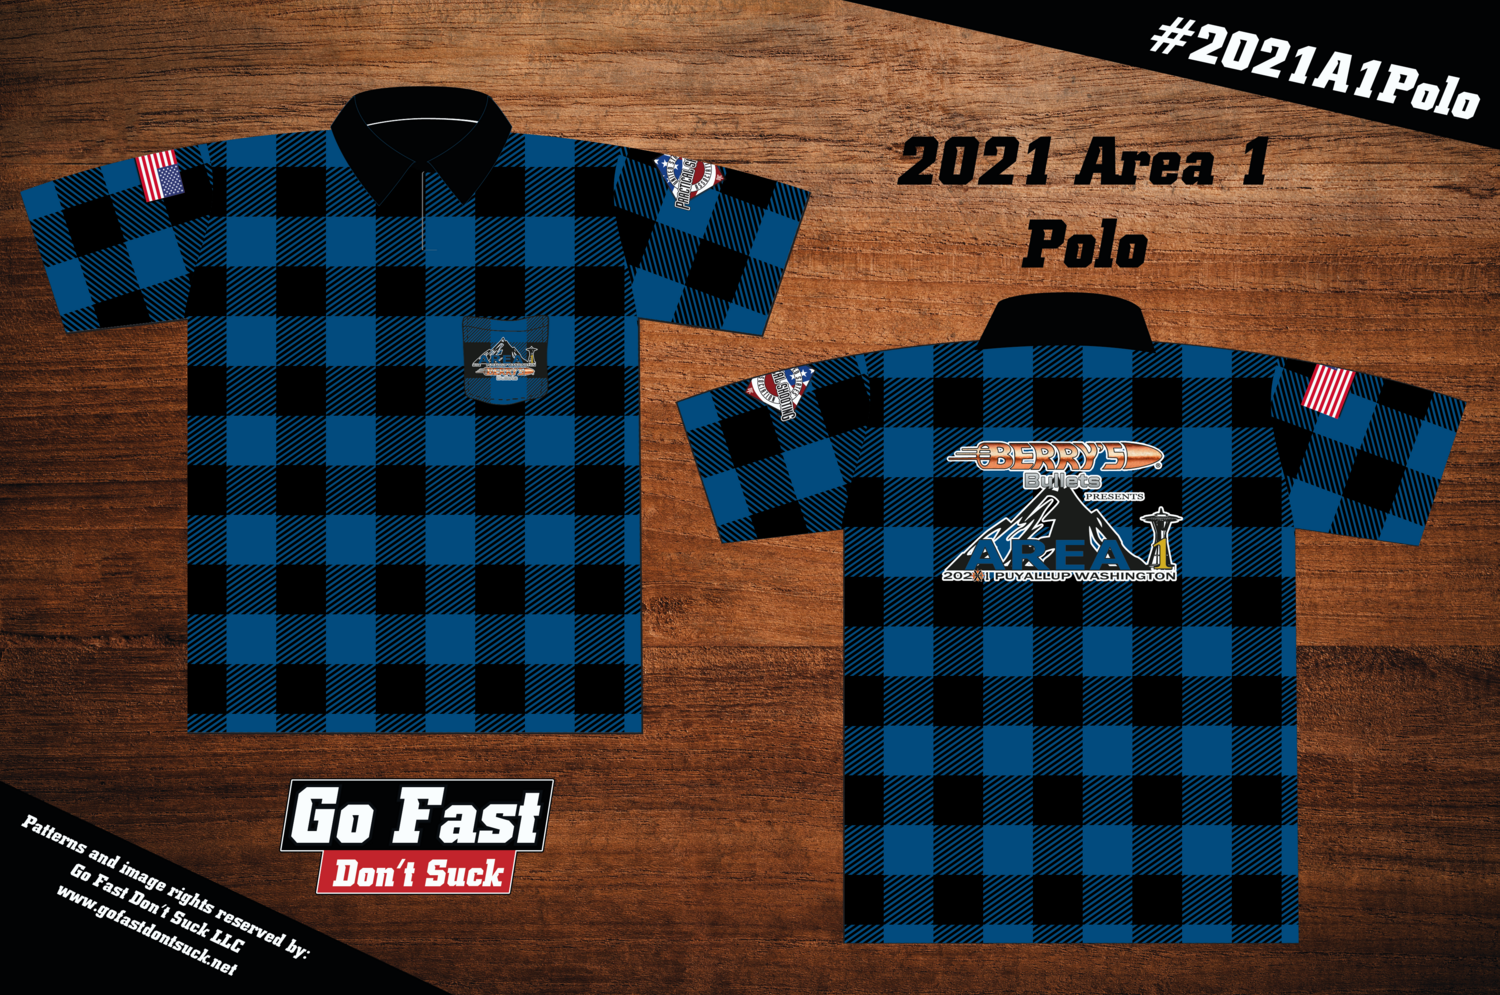 Berry's Bullets 2021 Area 1 Championship - Match Polo Jersey